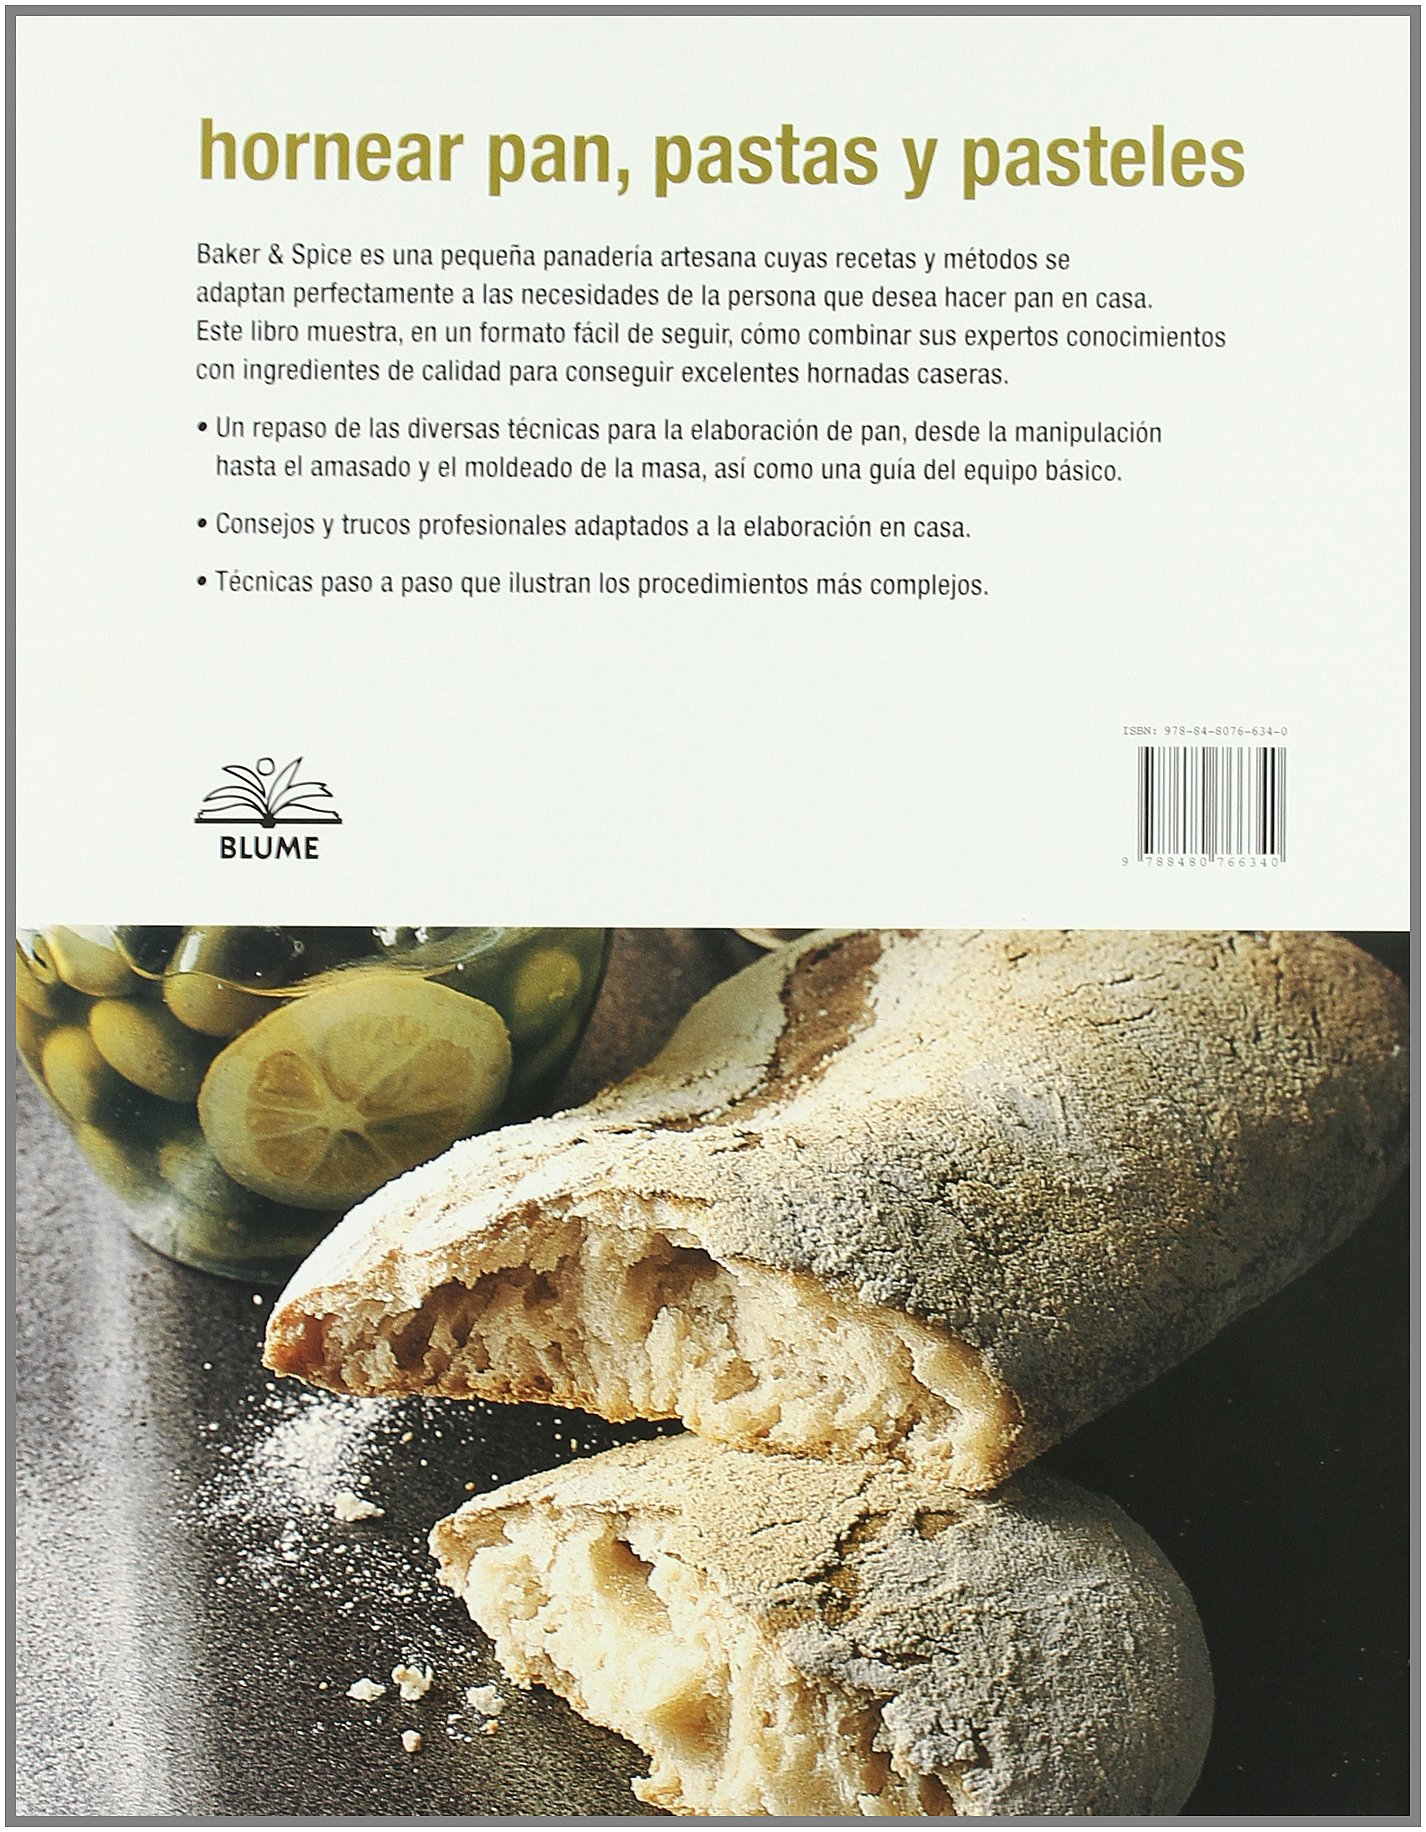 Hornear pan, pastas y pasteles (Spanish Edition) by Blume